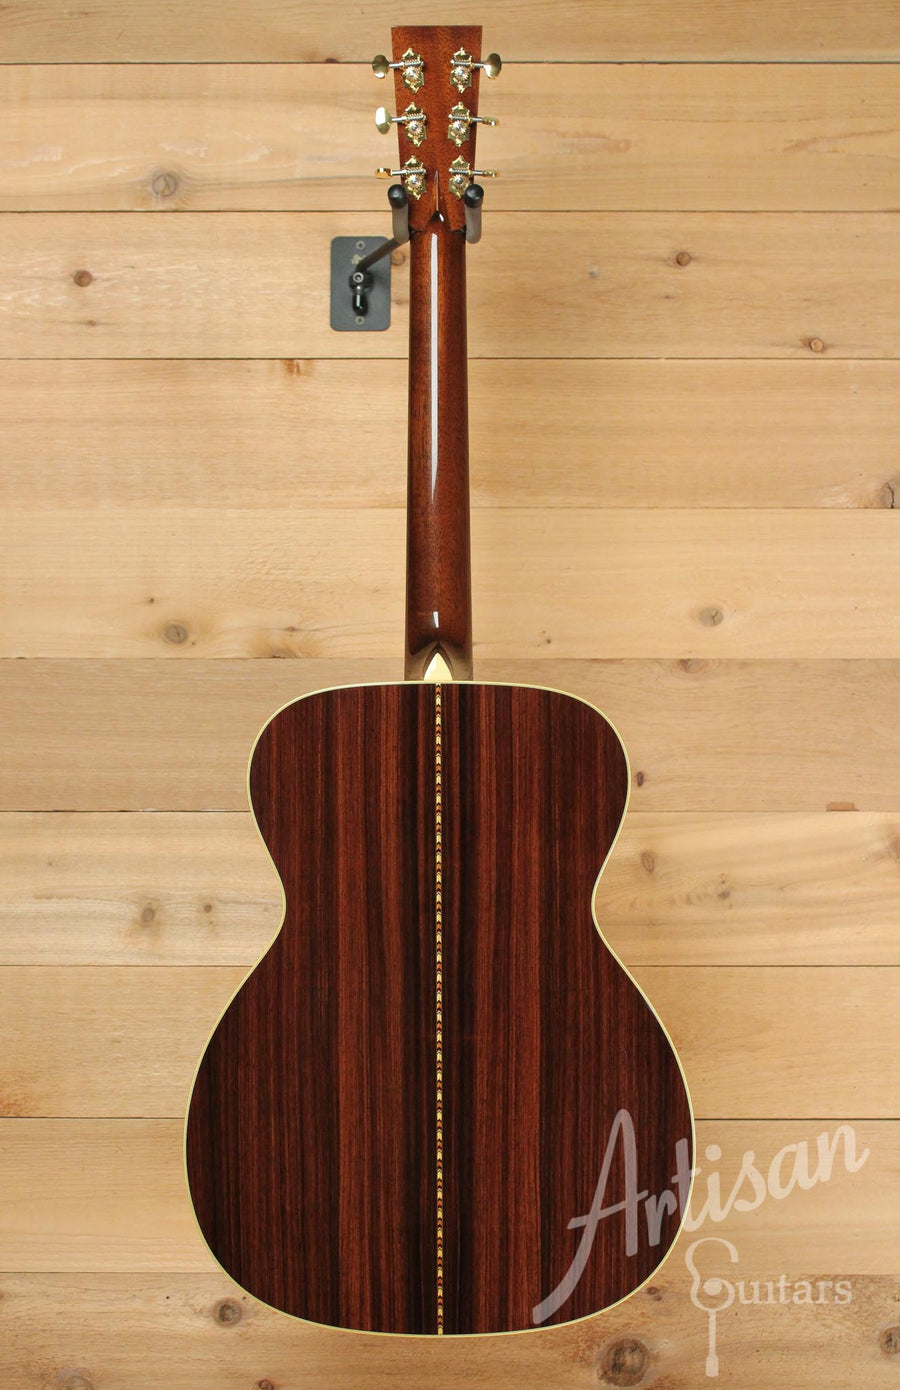 Collings OM3 G Custom Guitar Pre-Owned 2014 German Spruce and East Indian Rosewood Varnish Finish Short Scale ID-10099 - Artisan Guitars